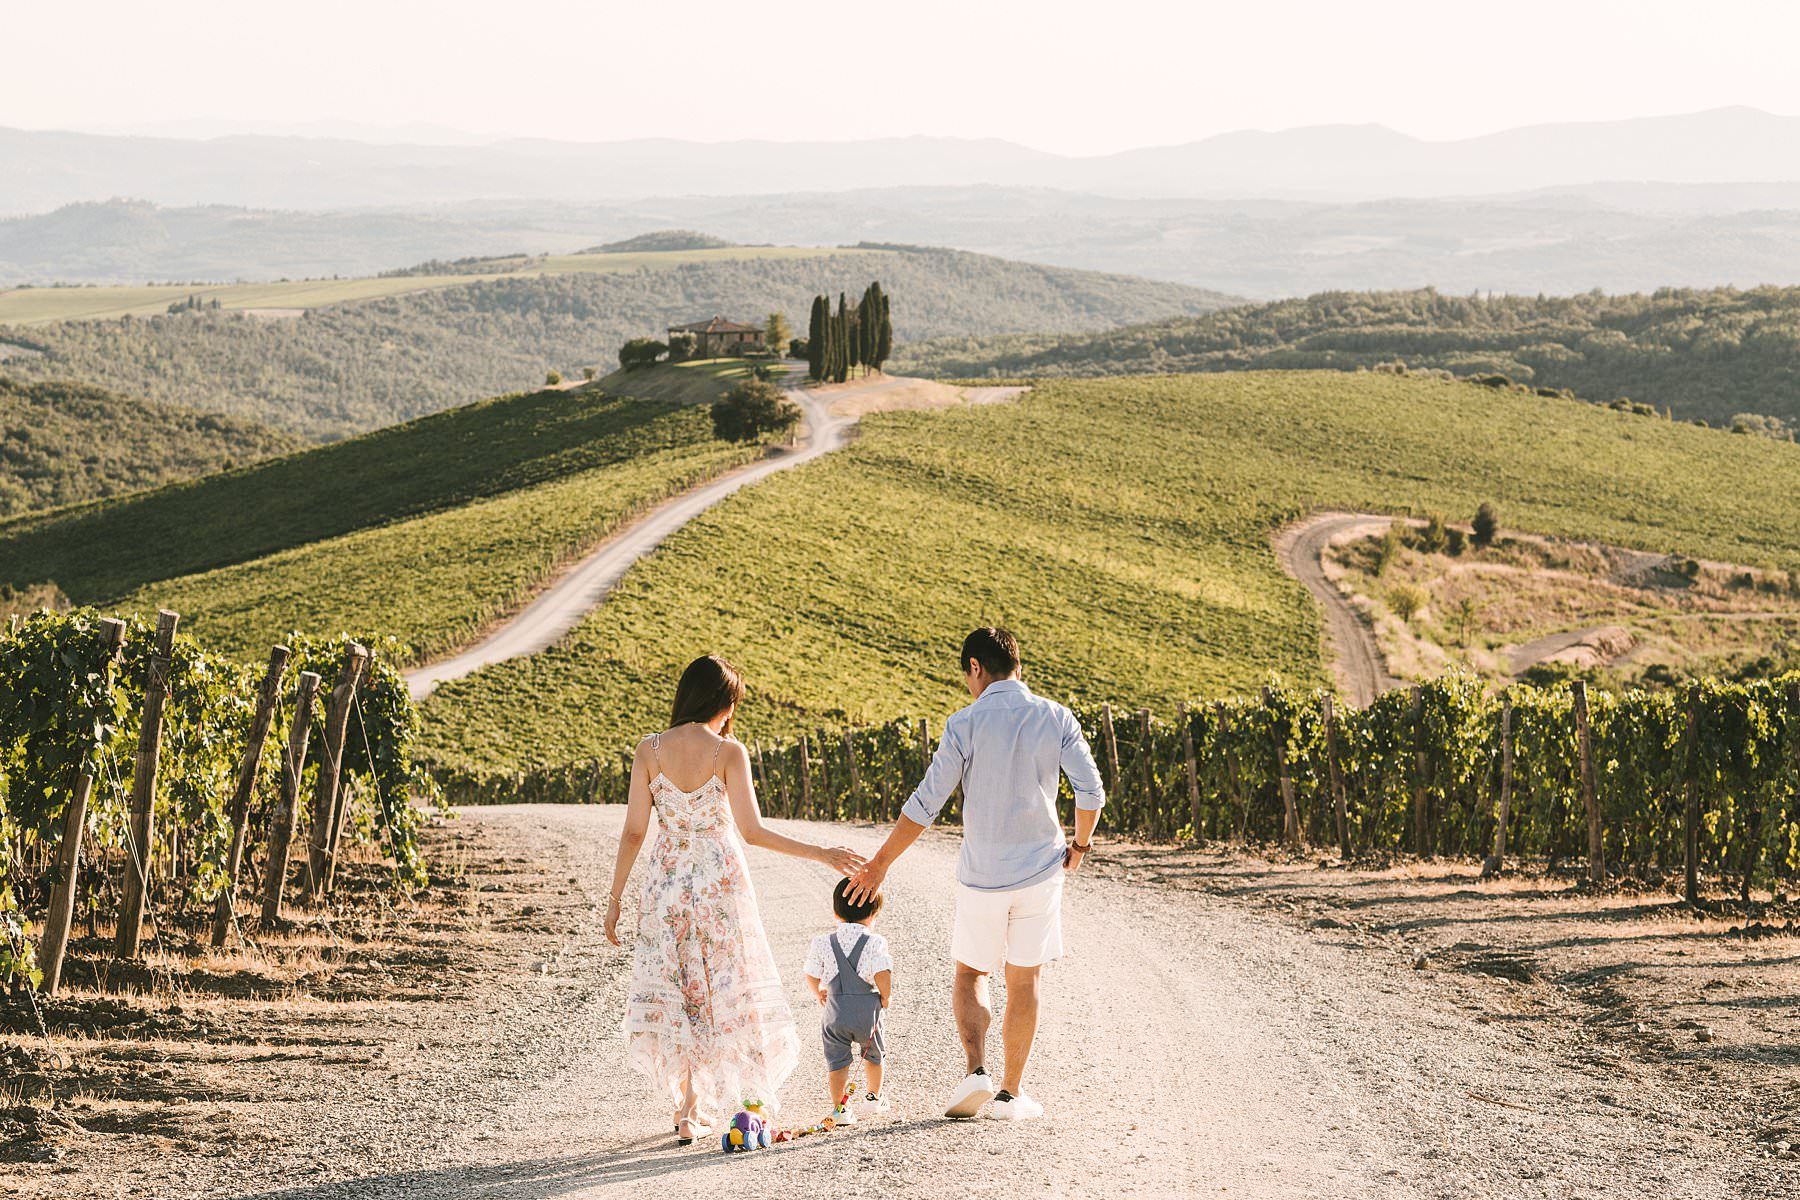 Sweet family holiday photoshoot in the wonderful Tuscan countryside. We always say that vacations make the best memories of our lives, and that's undoubtedly true. But memories tend to fade with time, and if we are traveling with our little ones they might not even remember those special moments